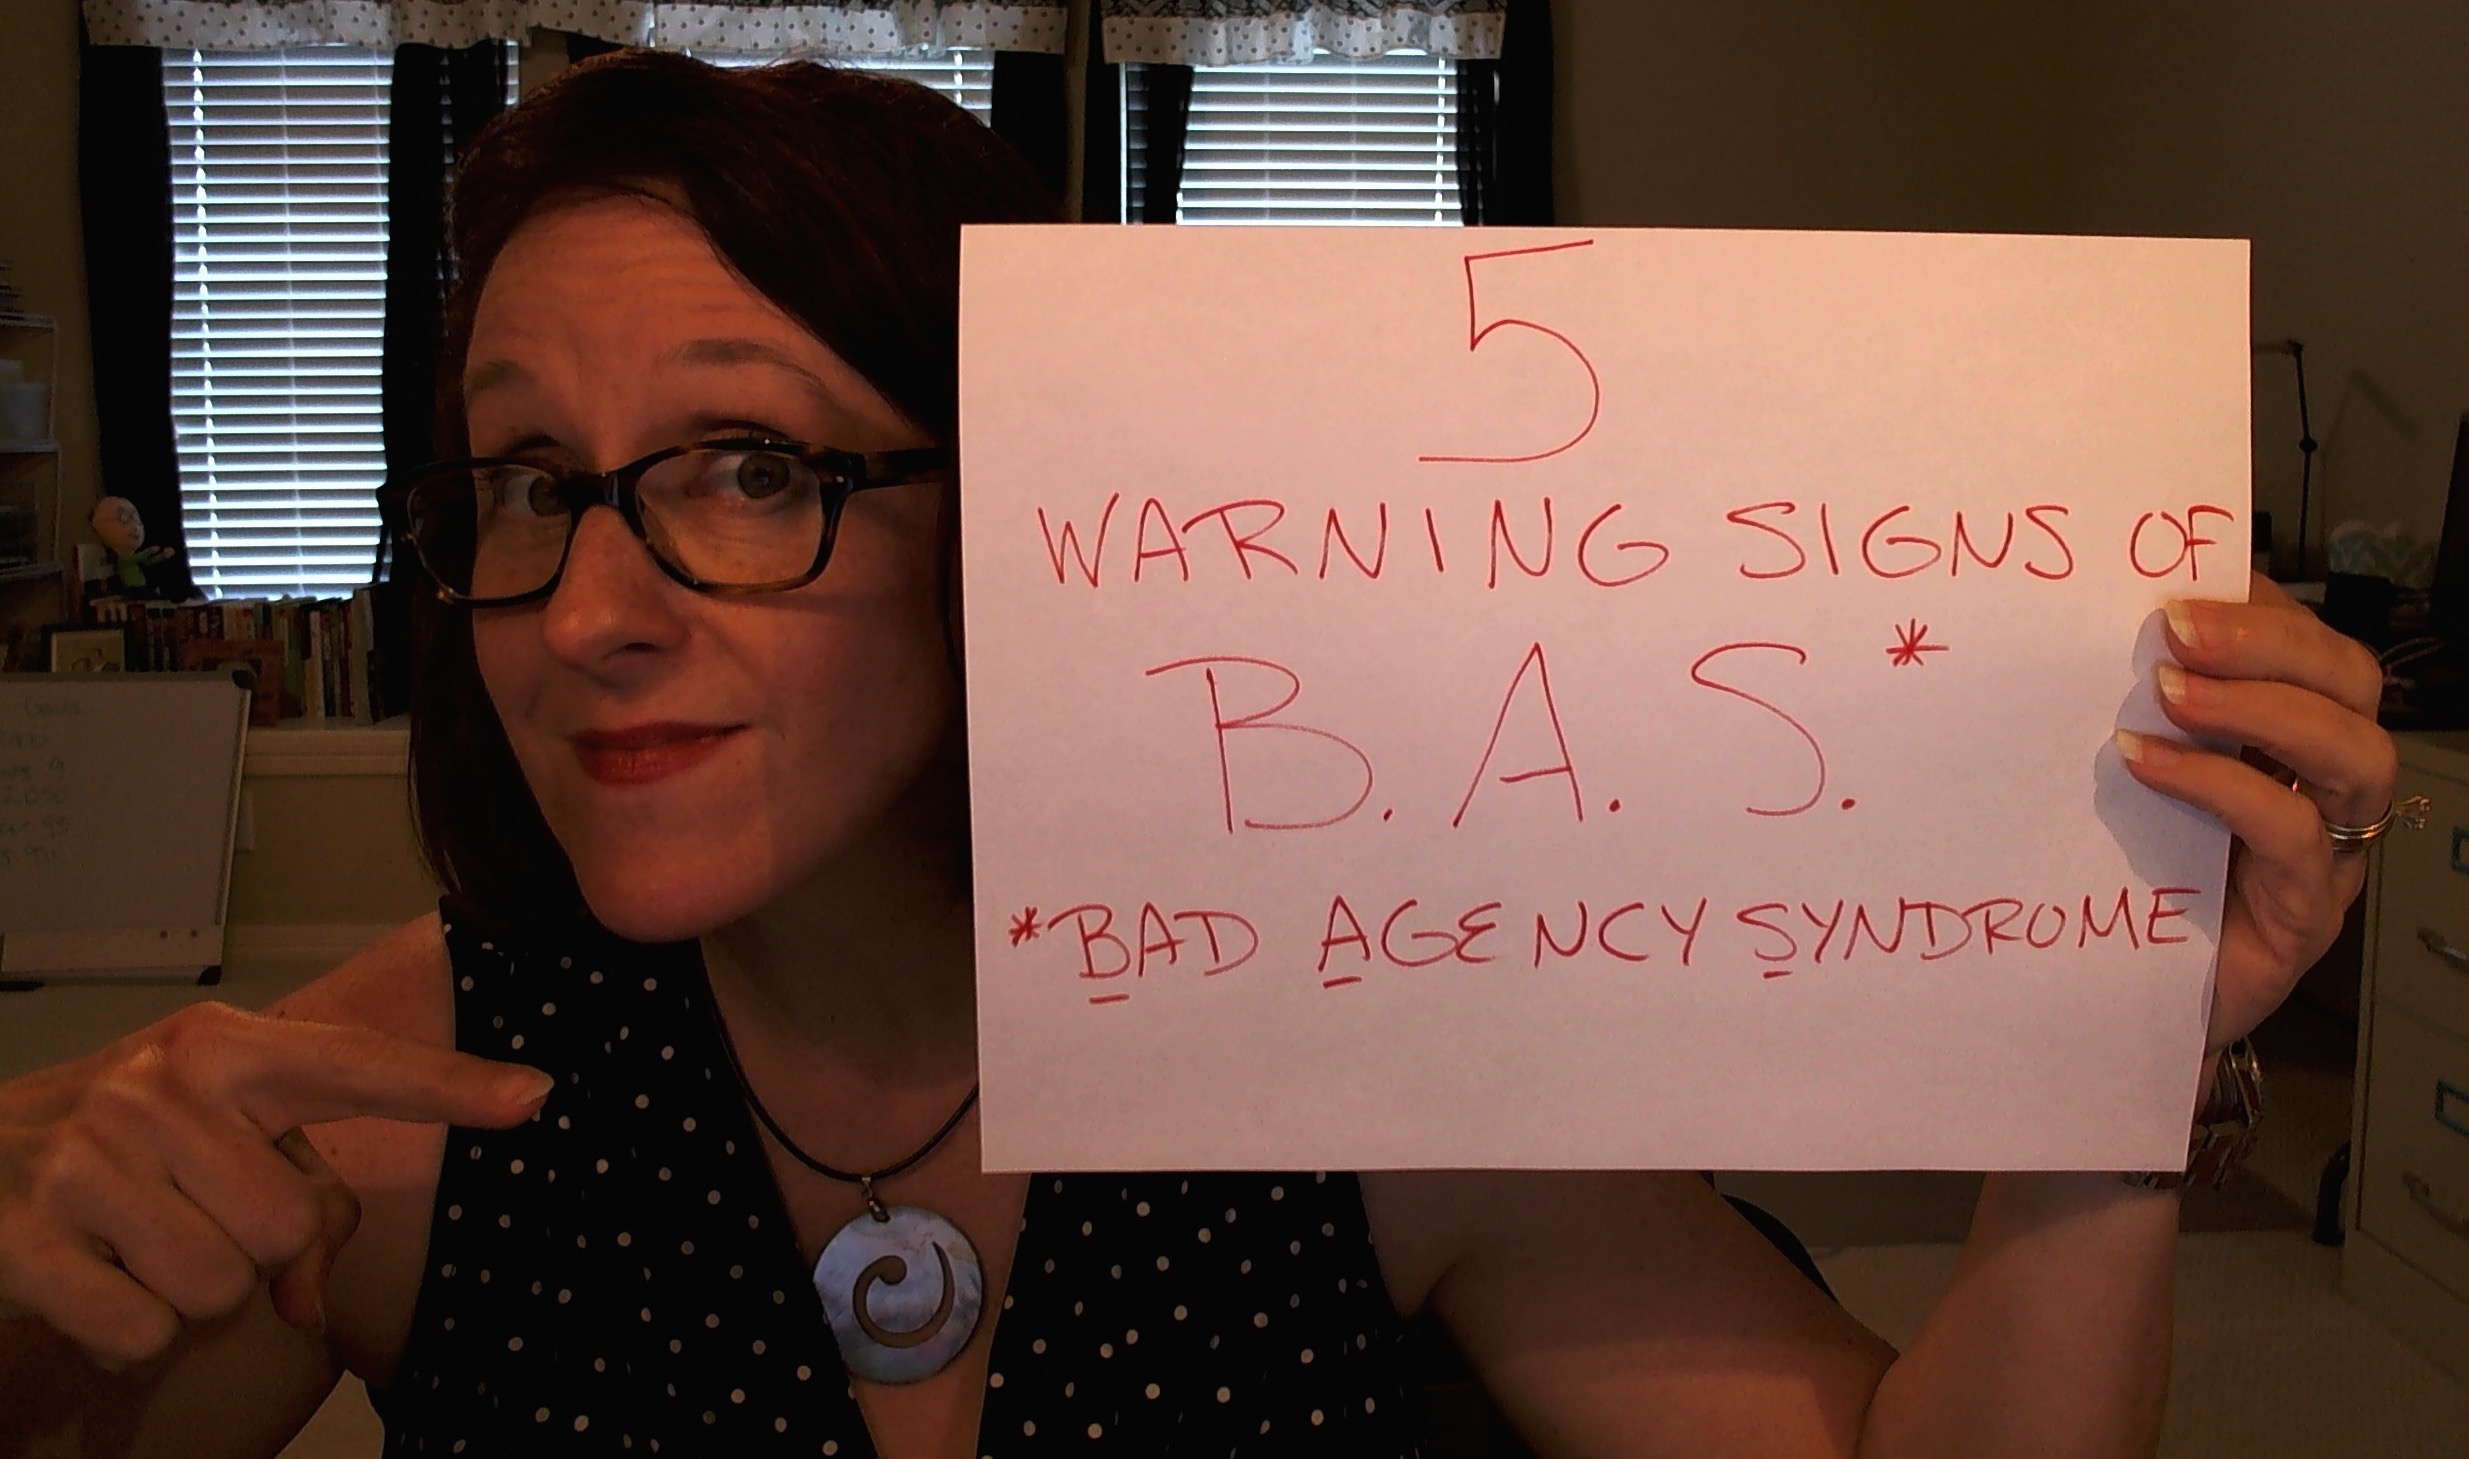 Content Marketing Podcast 174: 5 Warning Signs of B.A.S. (Bad Agency Syndrome)